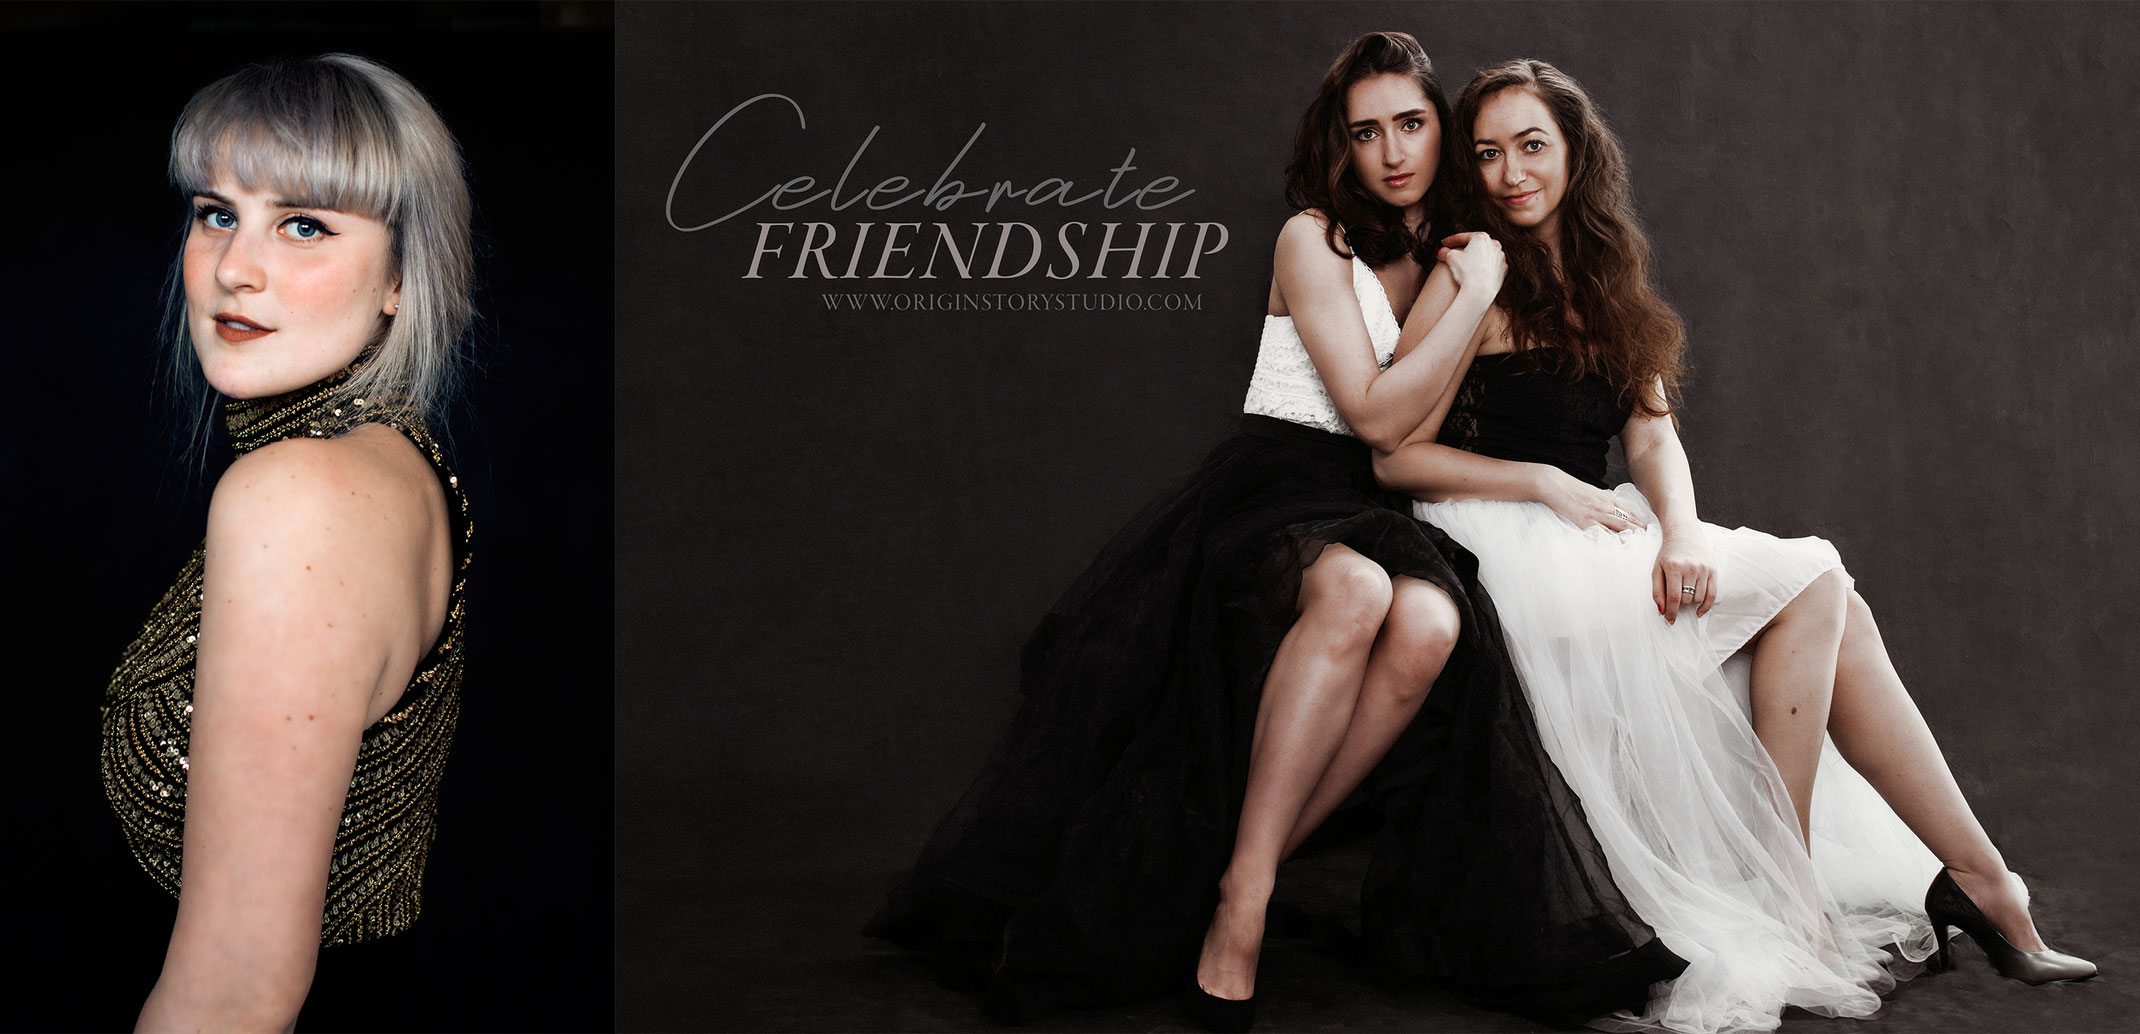 friendship-girlfriends-photoshoot-celebrate-studio-eindhoven-event